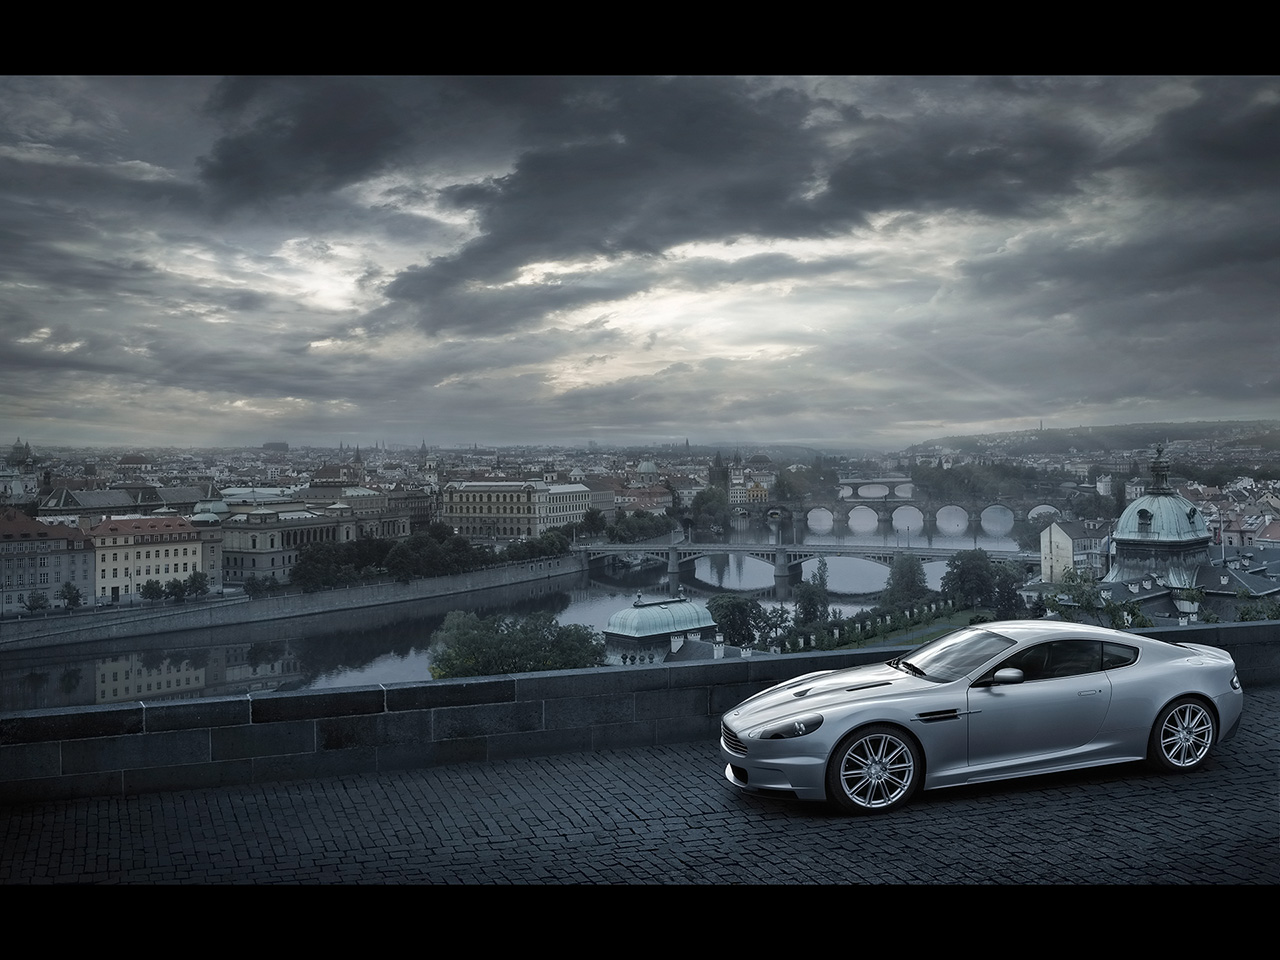 World Of Cars: Aston Martin Db9 Wallpaper